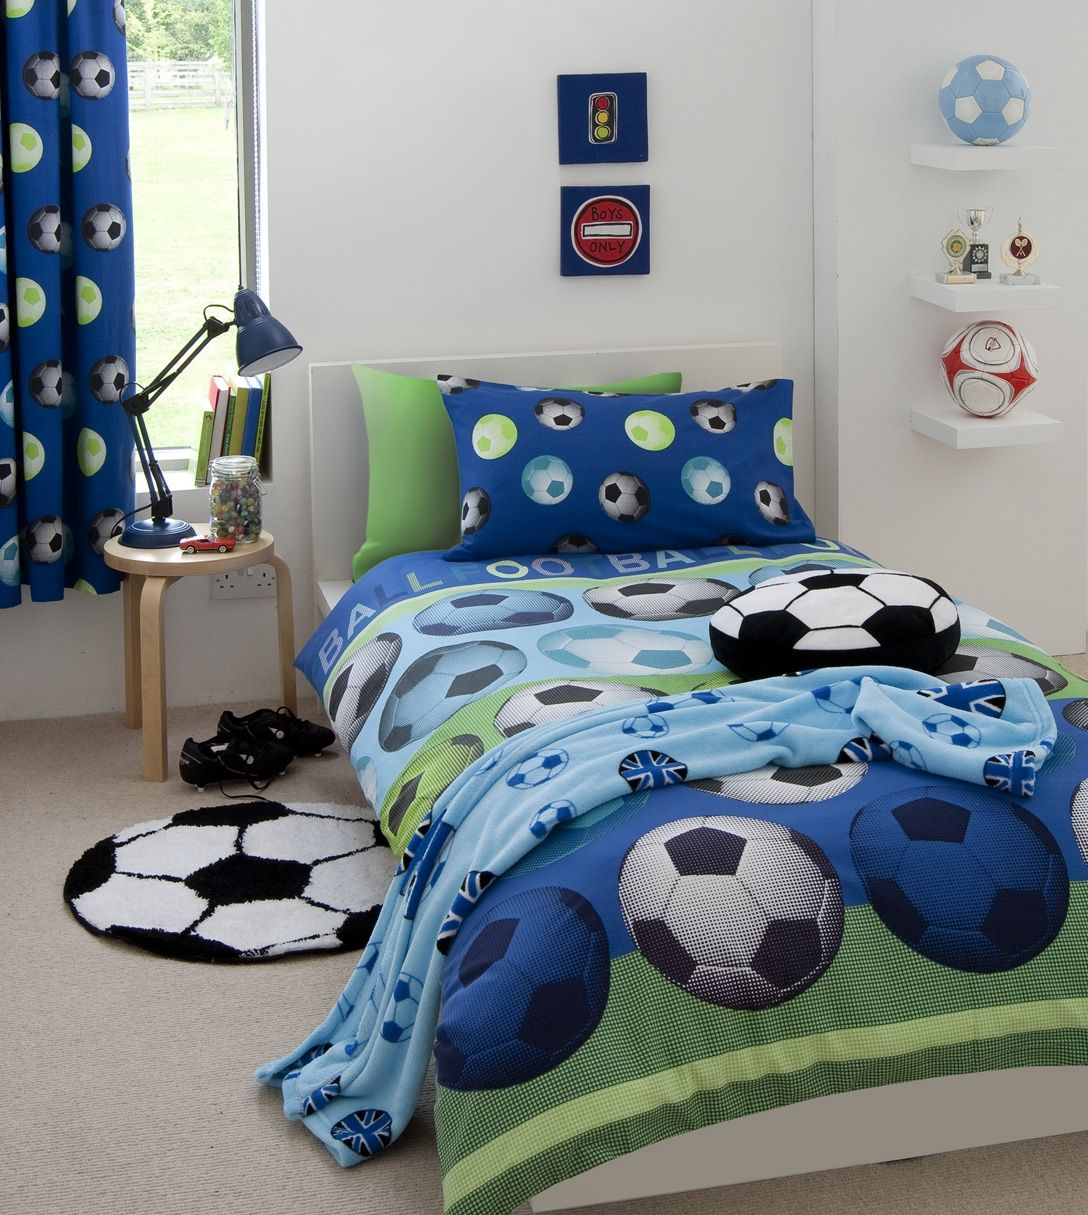 Twin Baby Boy Bedroom Ideas Trendy Bedroom Lighting Bedroom Color Ideas Pinterest Murphy Bed Bedroom Ideas: Boys Football Bedding Single & Double Duvet, Co-ordinating